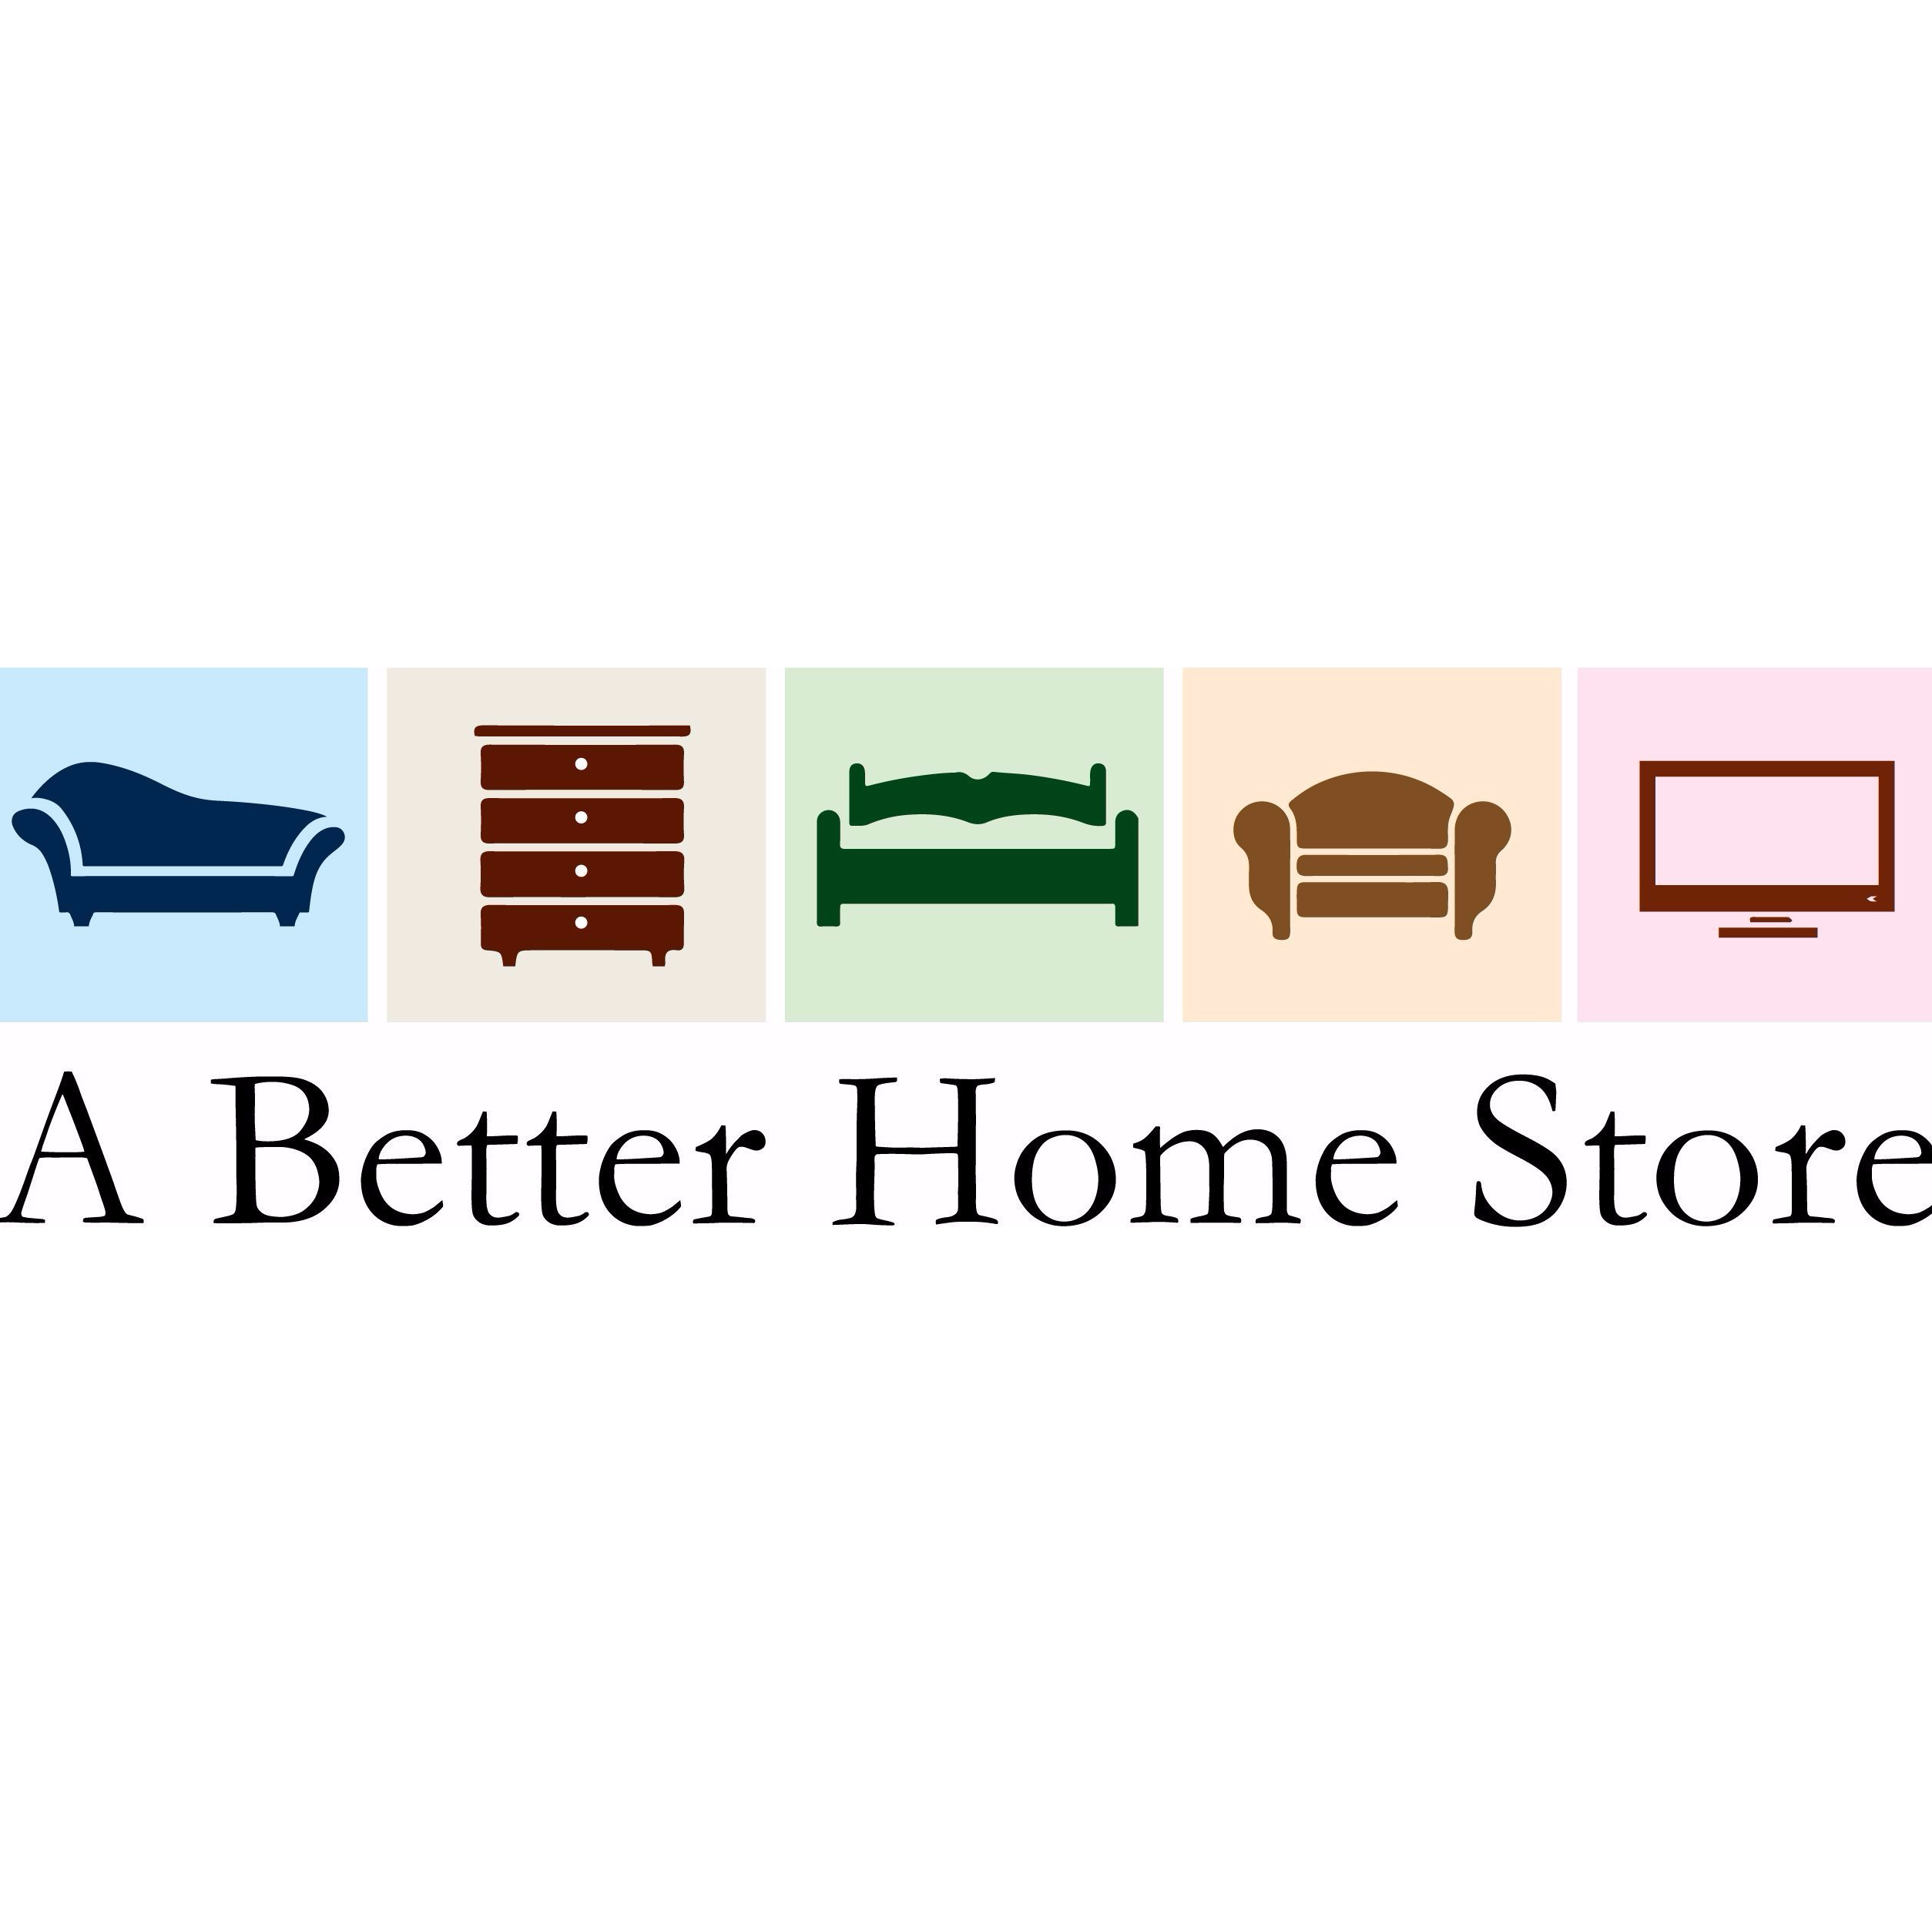 A Better Home Store